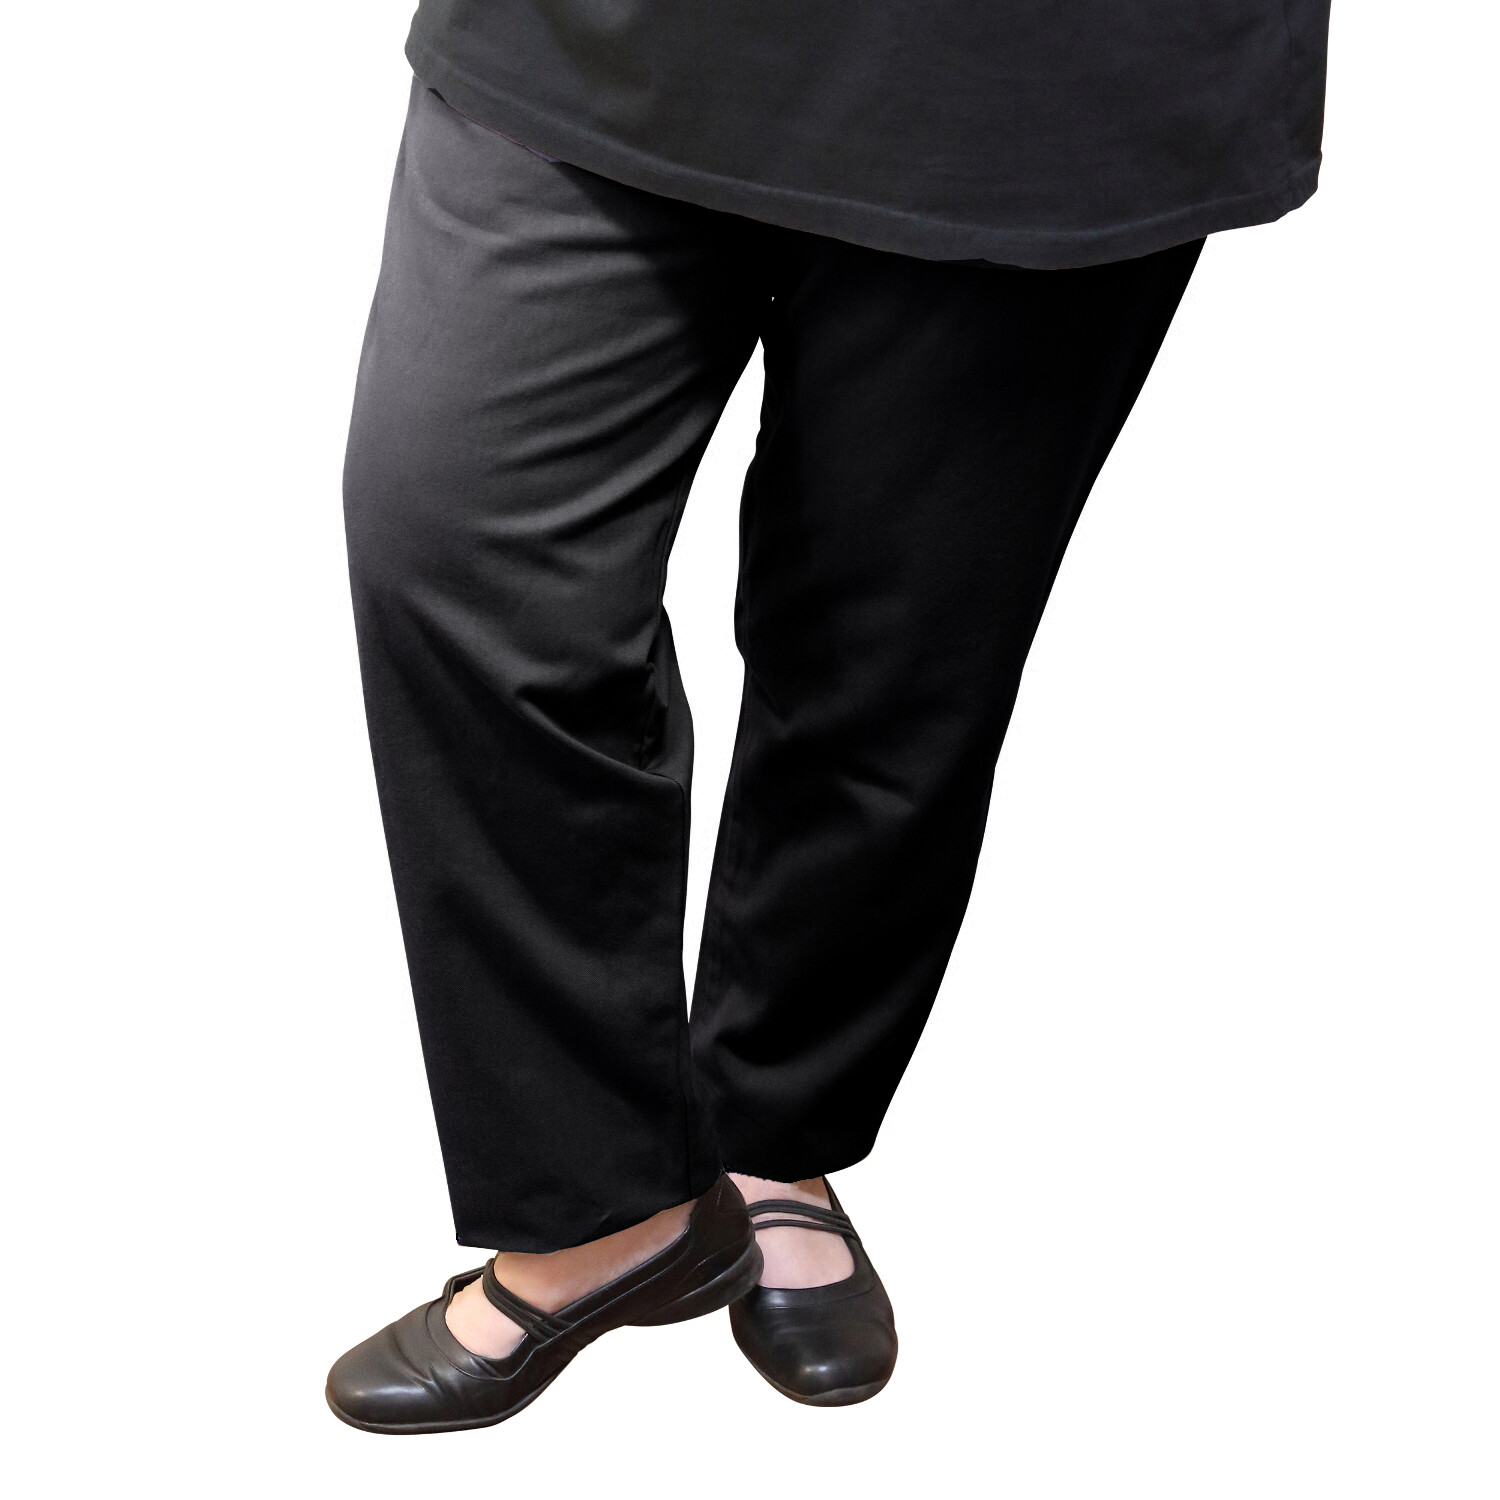 Cotton and Wool Blend Black Pants